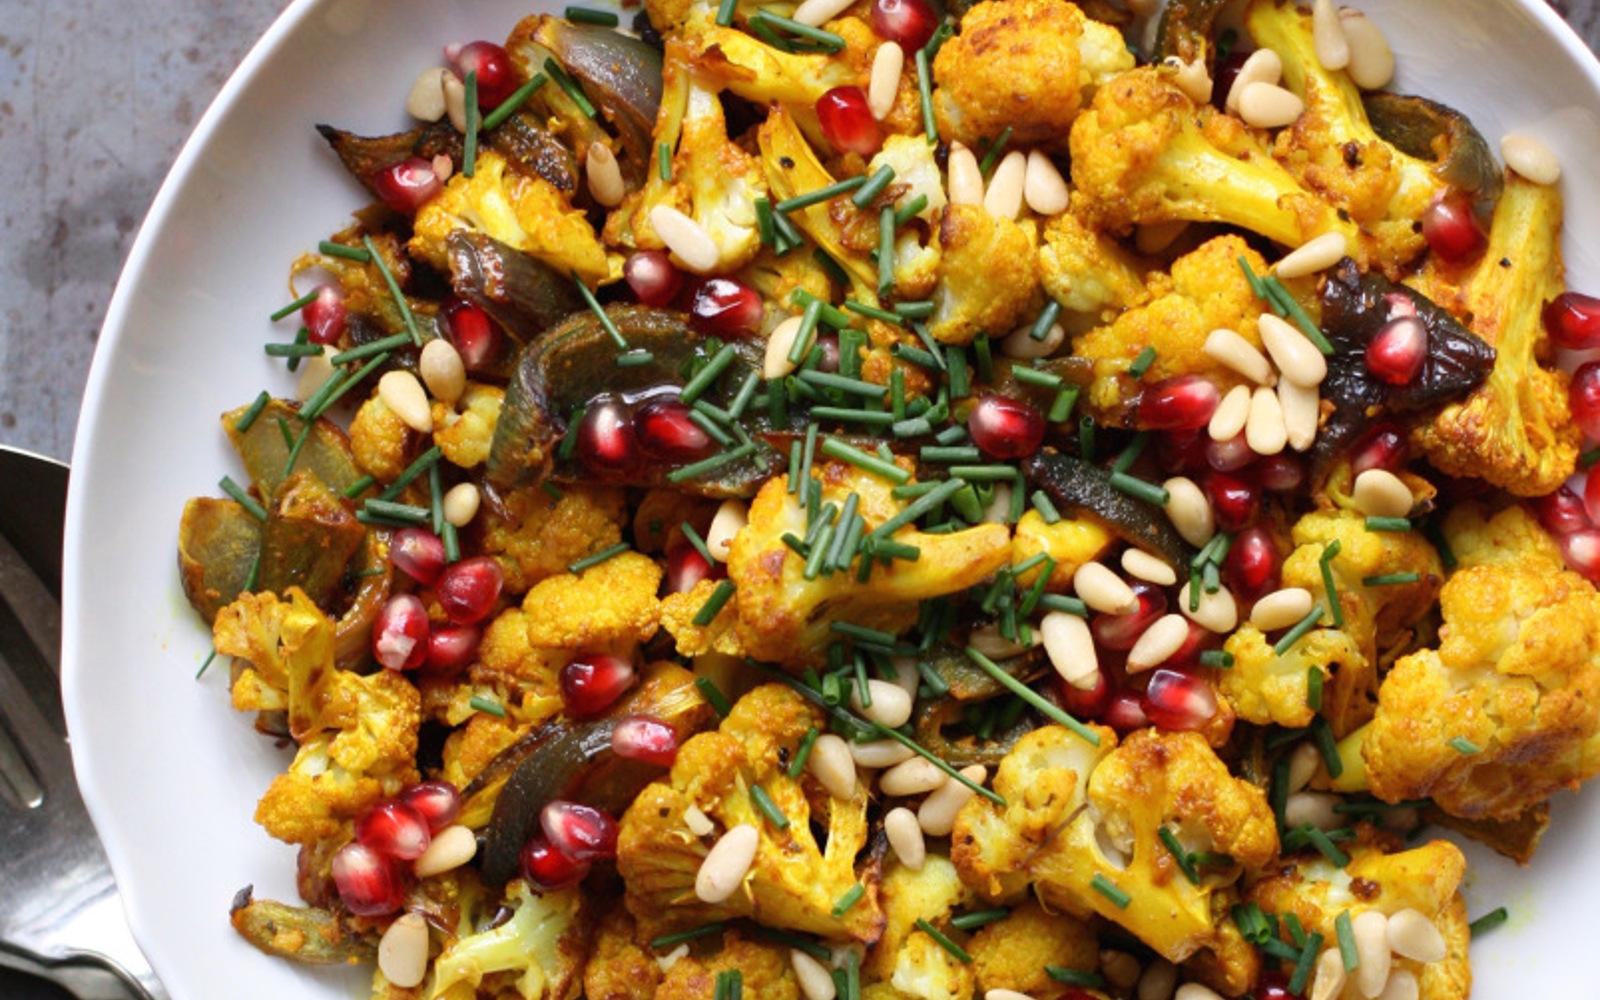 Vegan Grain-Free Turmeric-Roasted Cauliflower With Maple-Pomegranate Vinaigrette